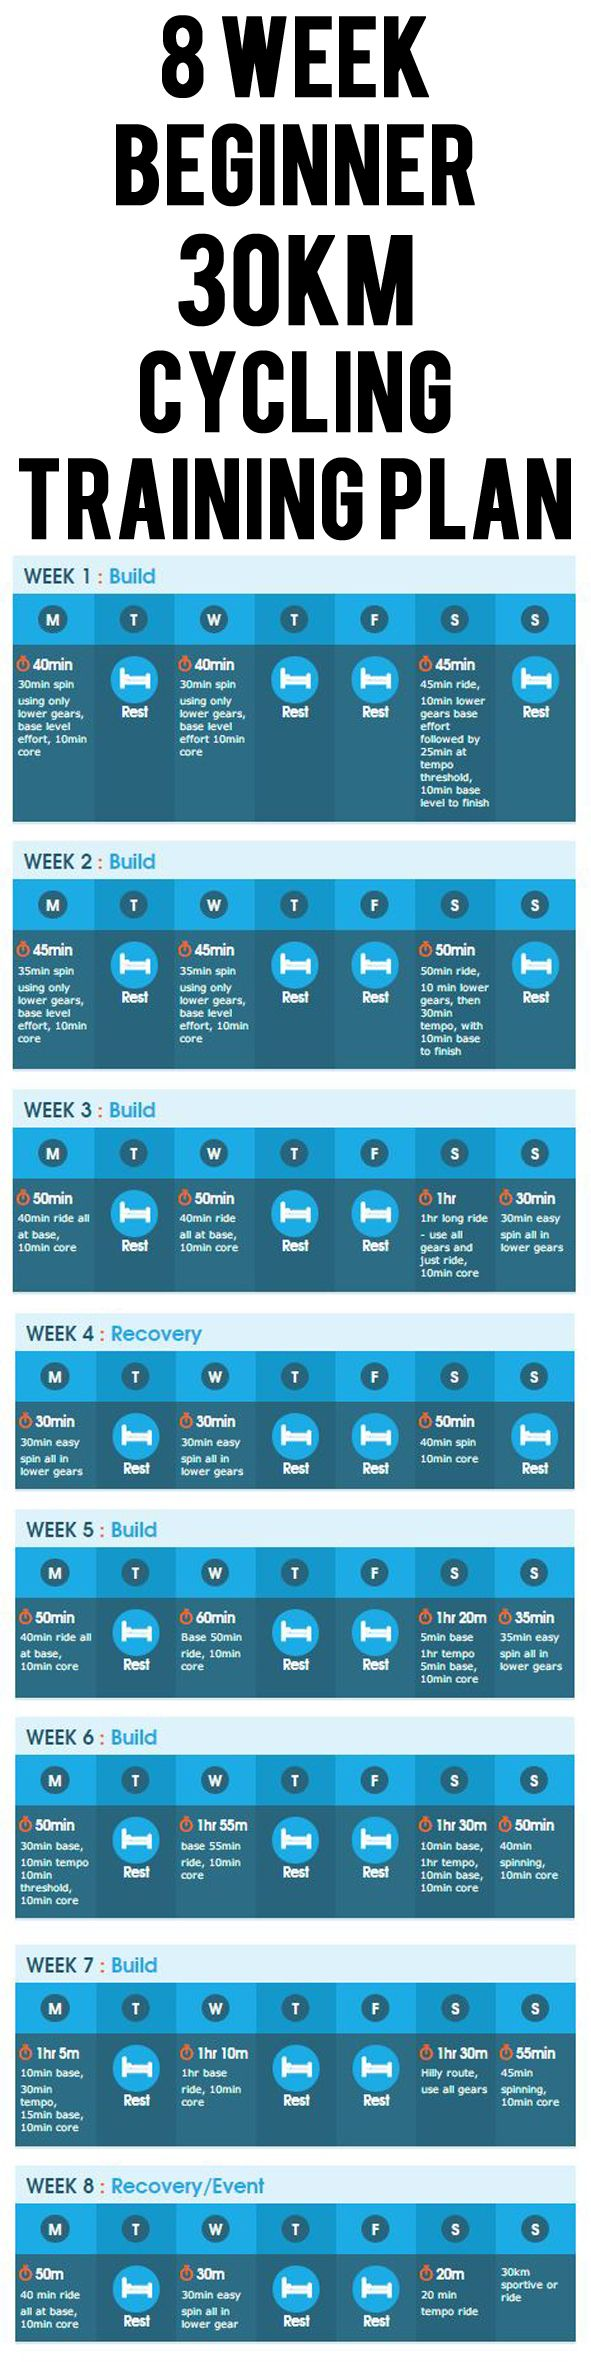 *8 WEEK BEGINNER 30KM  CYCLING TRAINING PLAN. #cycling #bike #cycle #bicycle #trainingplan